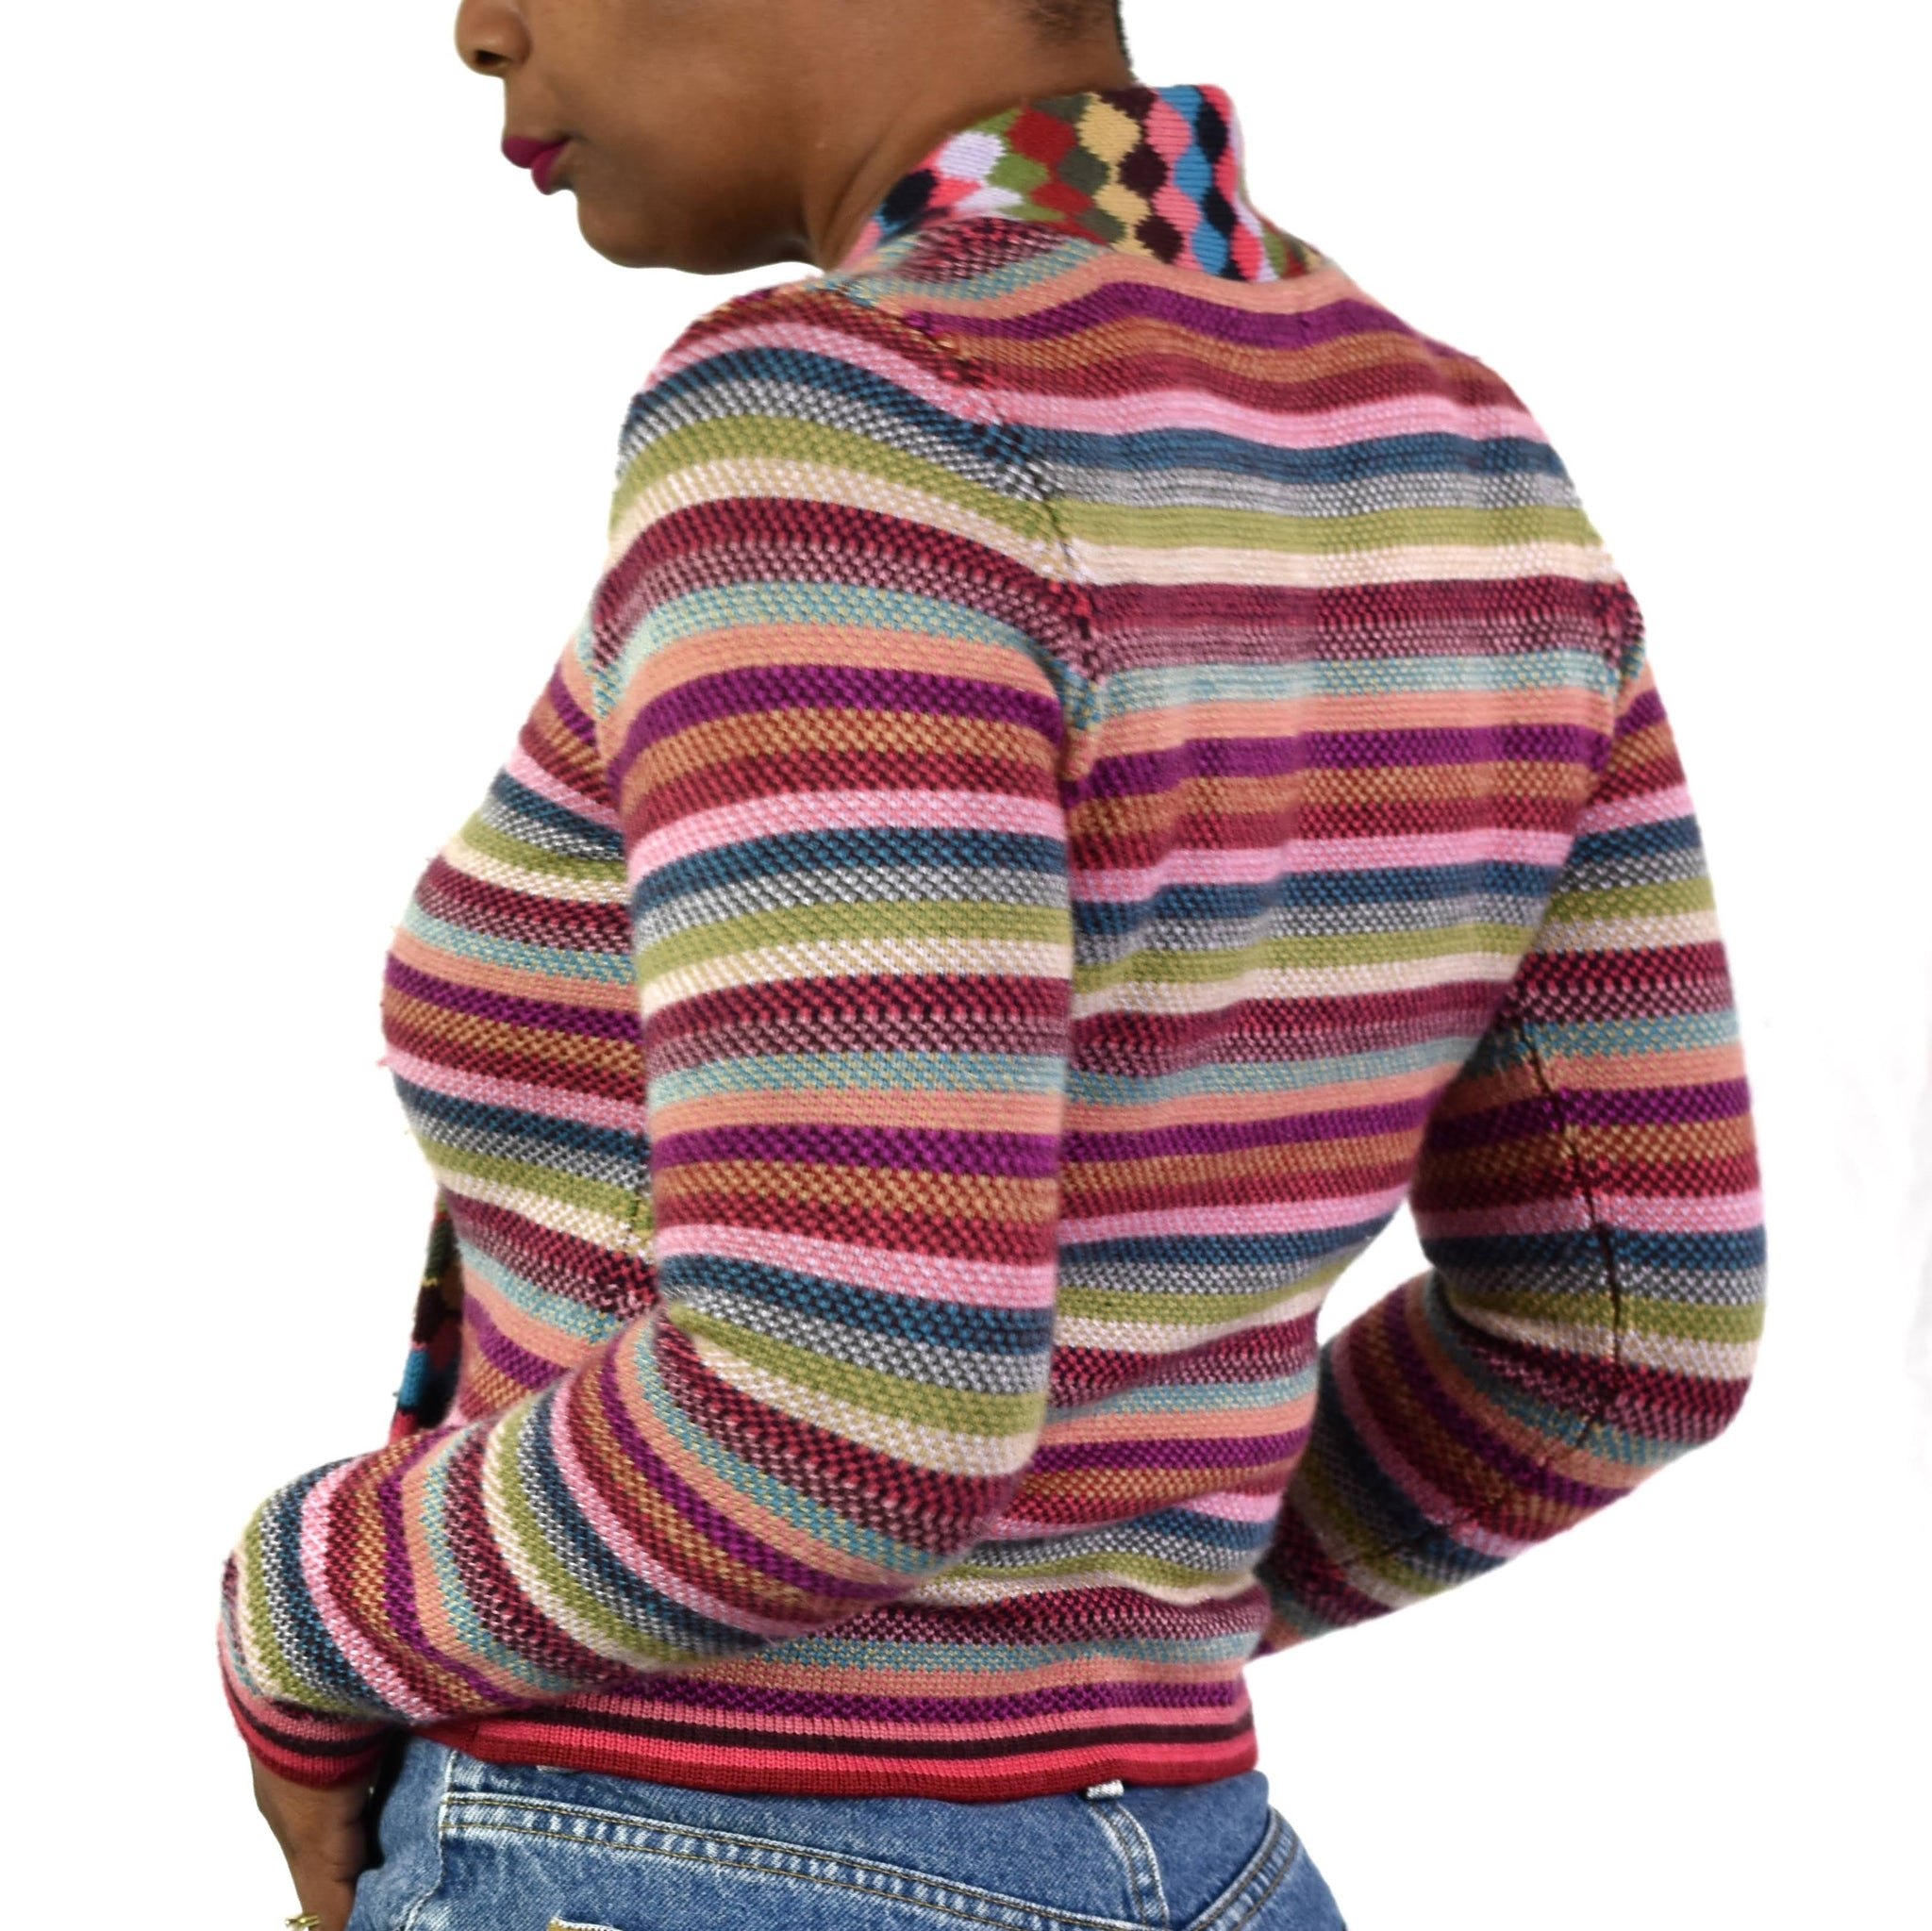 Cacharel Rainbow Stripe Sweater Size Small